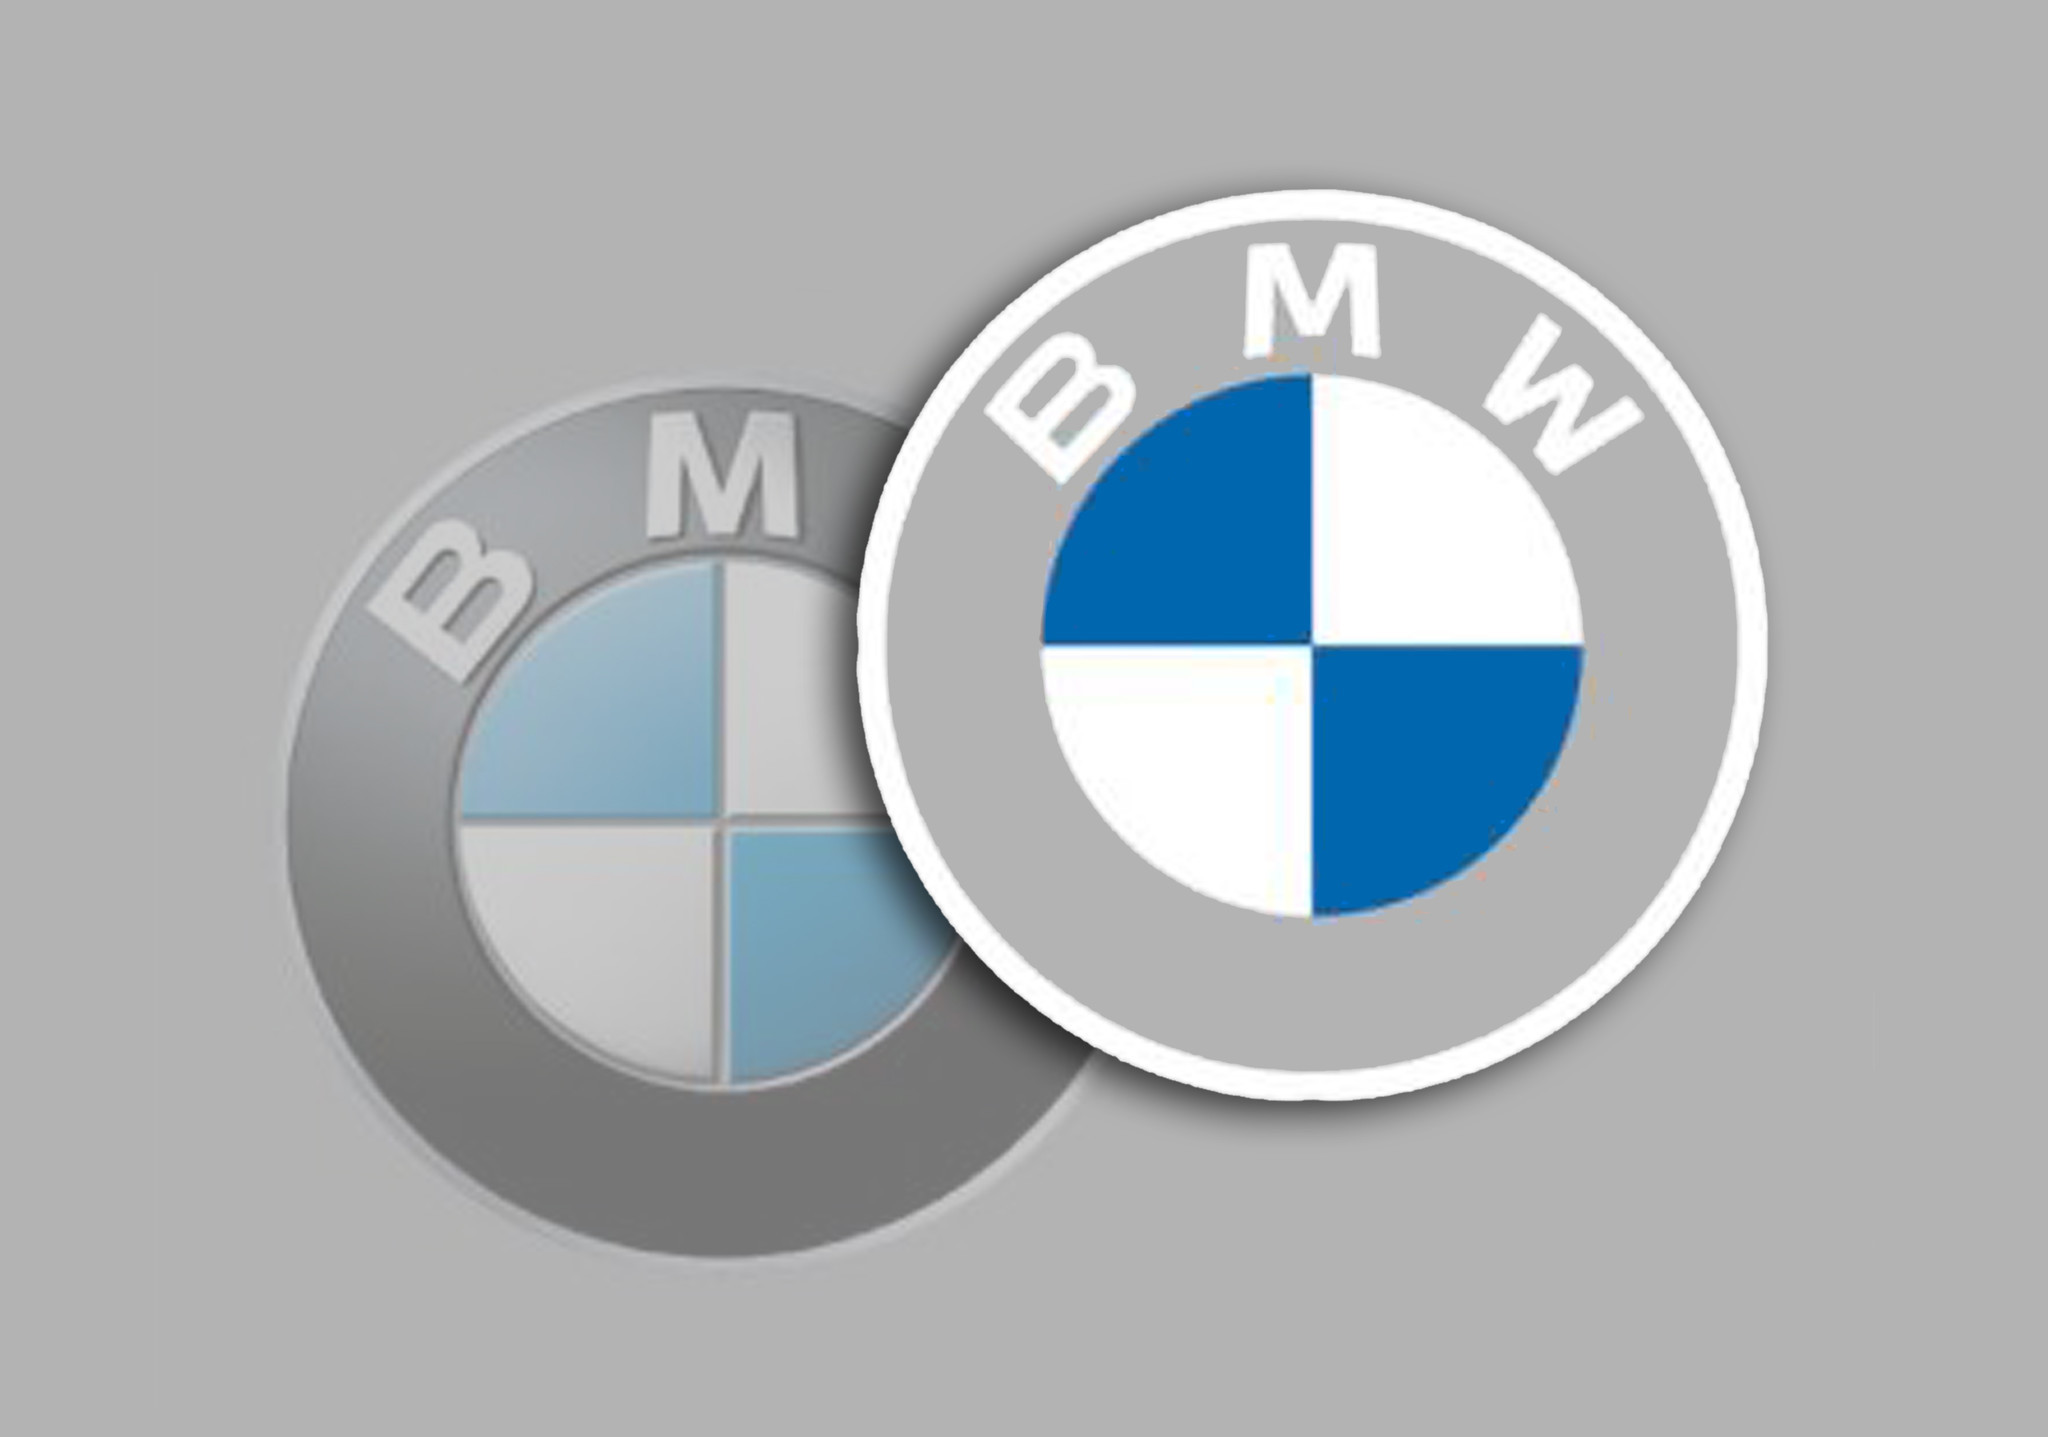 SEE IT: Luxury automaker BMW changes its iconic loco